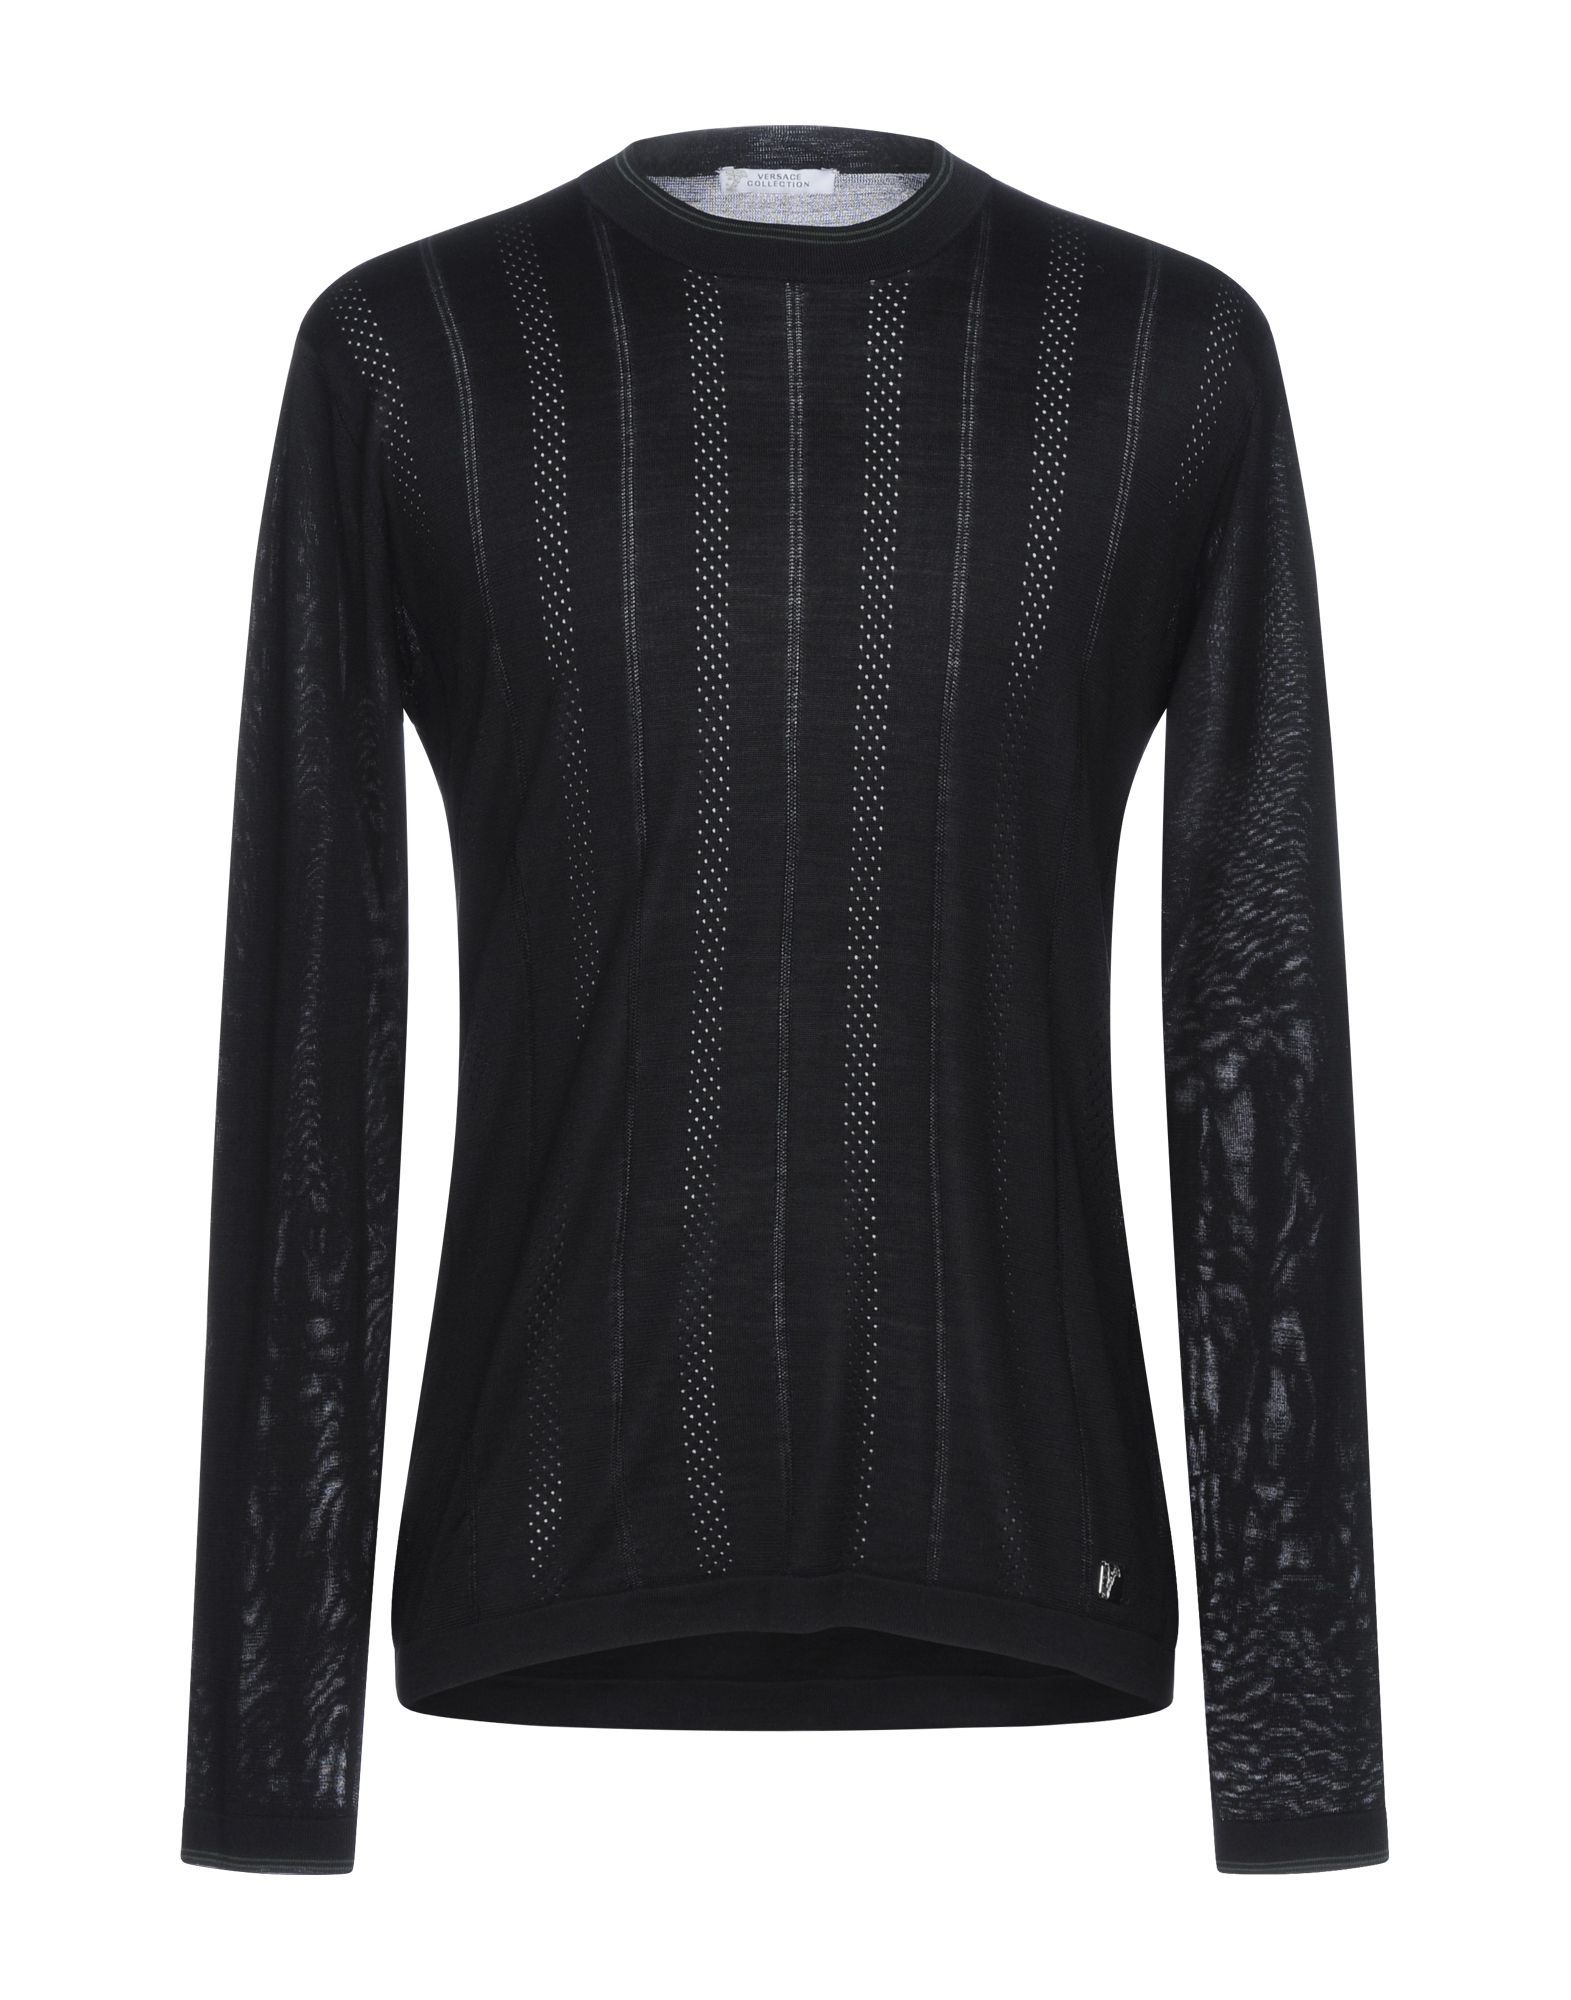 Versace Collection Black Silk Knit Jumper